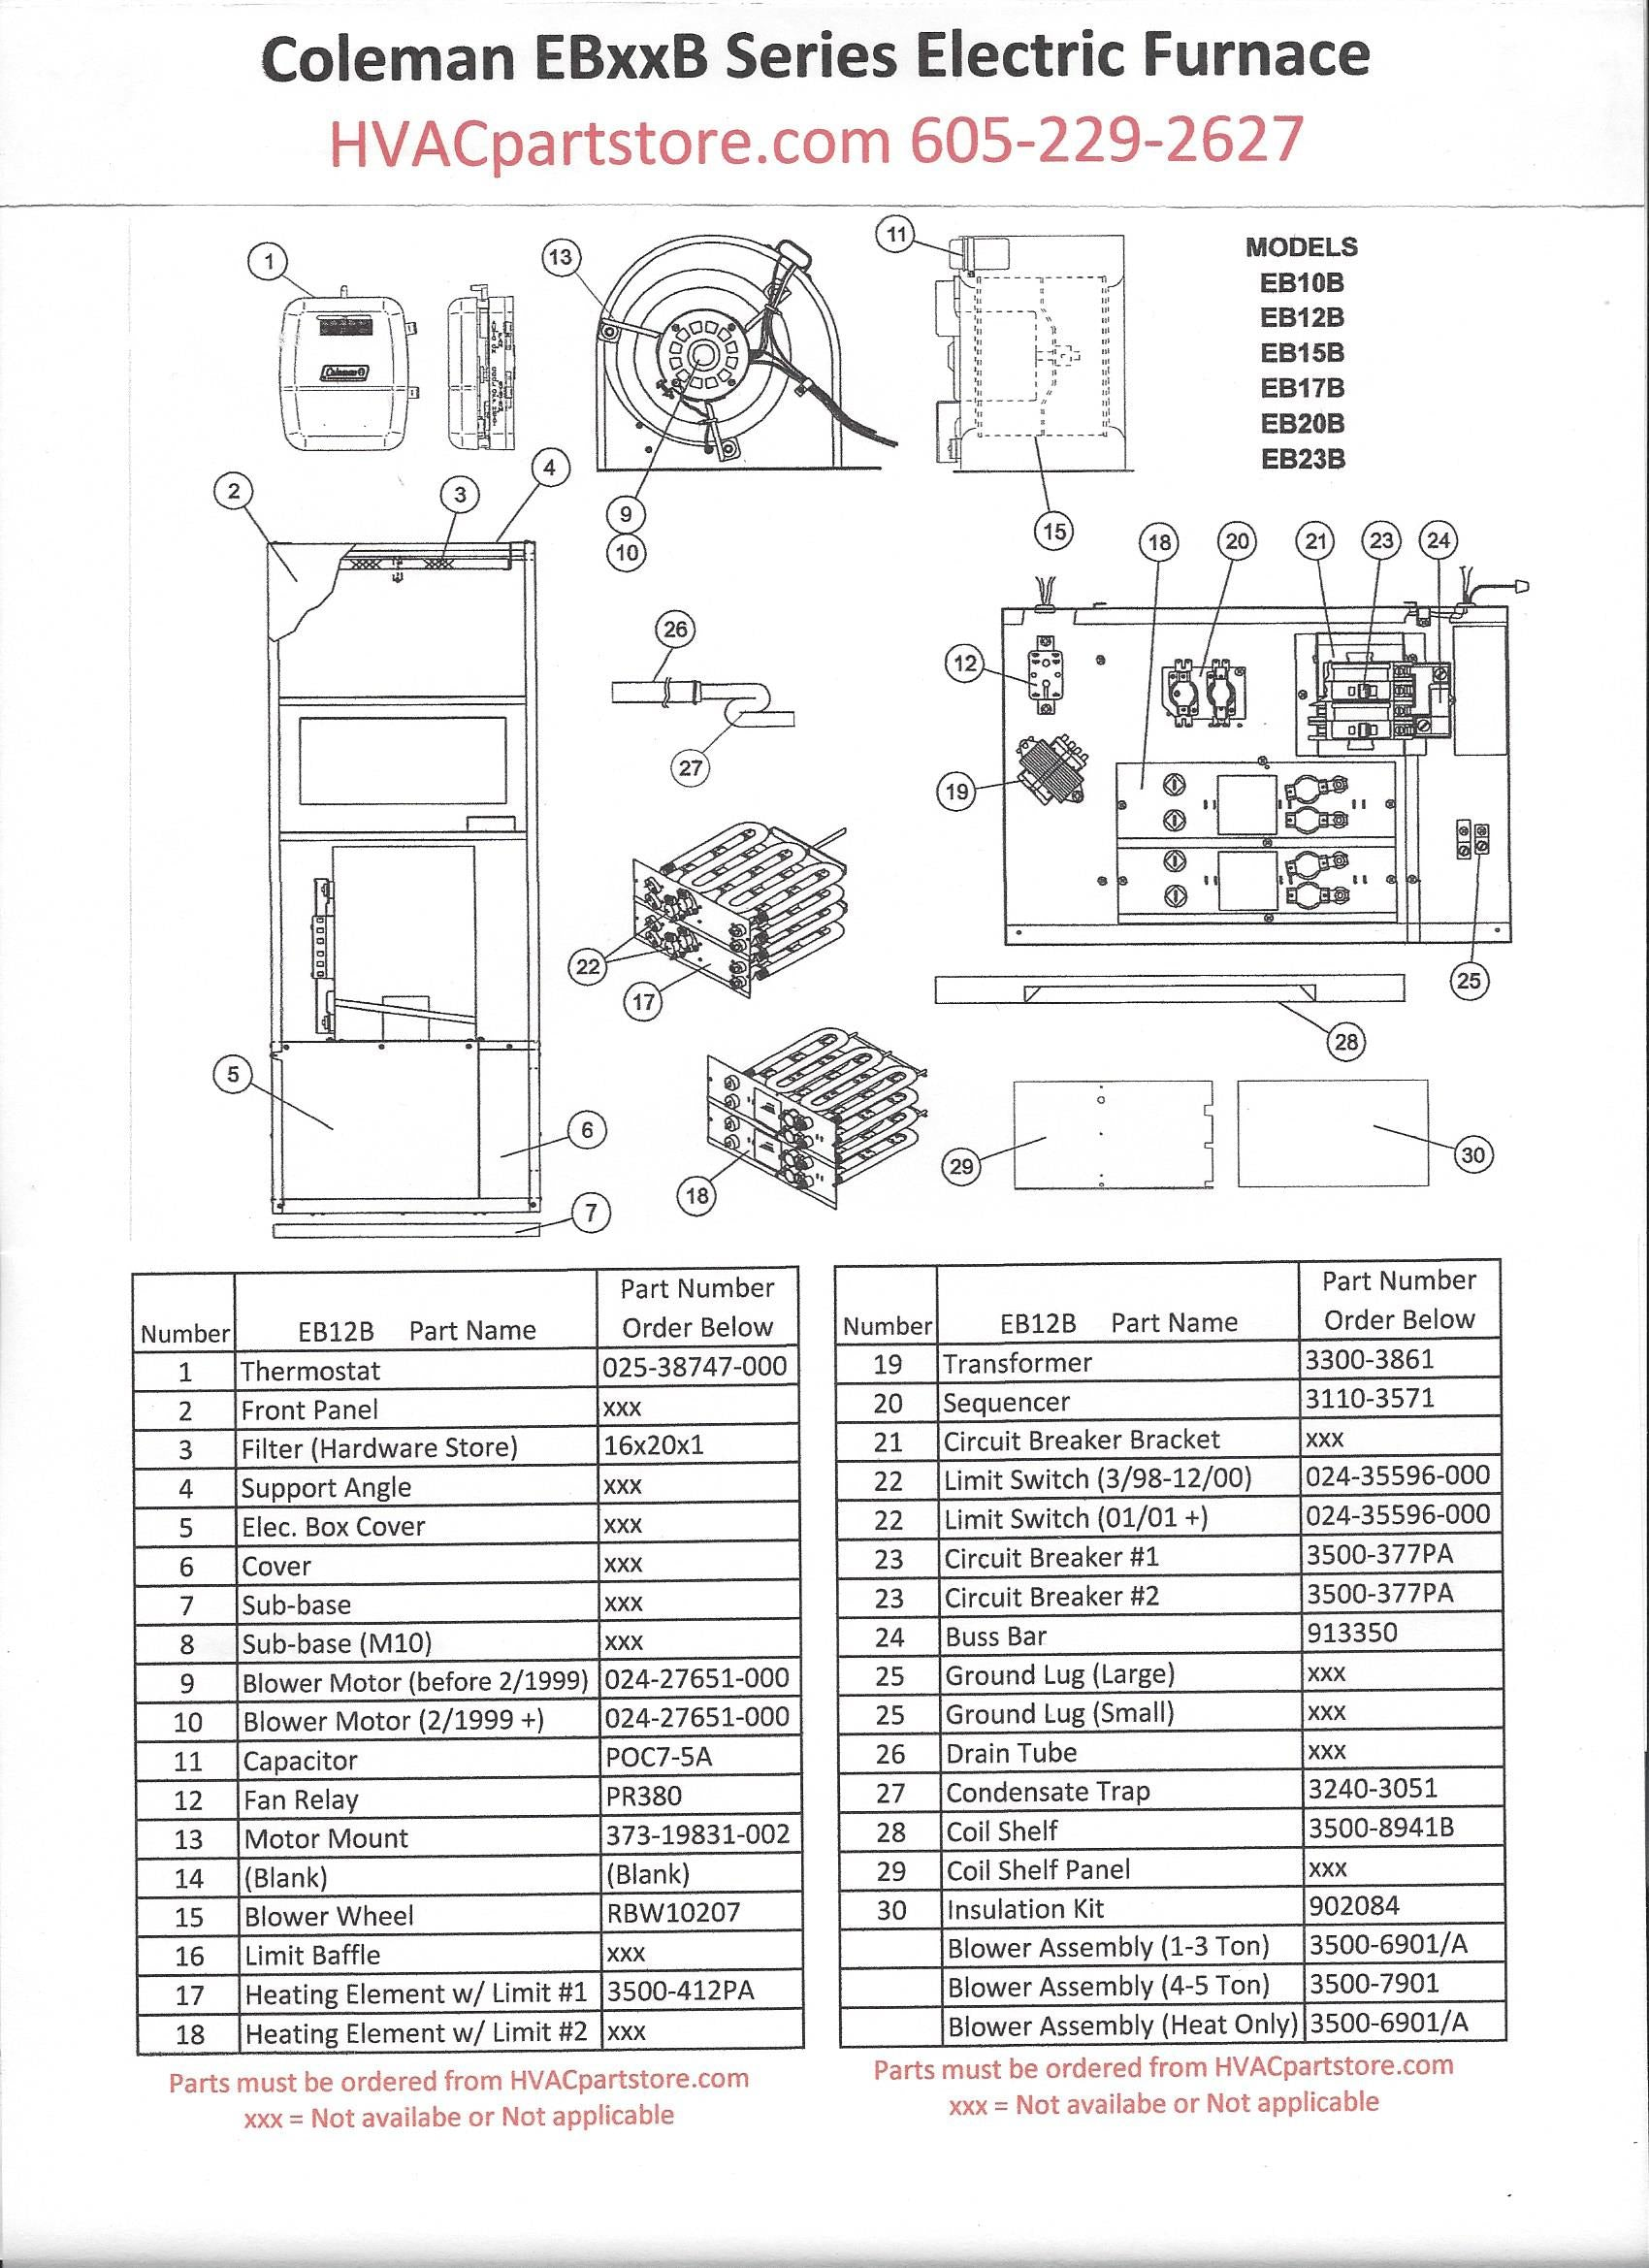 eb12b coleman electric furnace parts hvacpartstore click here to view a manual wiring diagrams